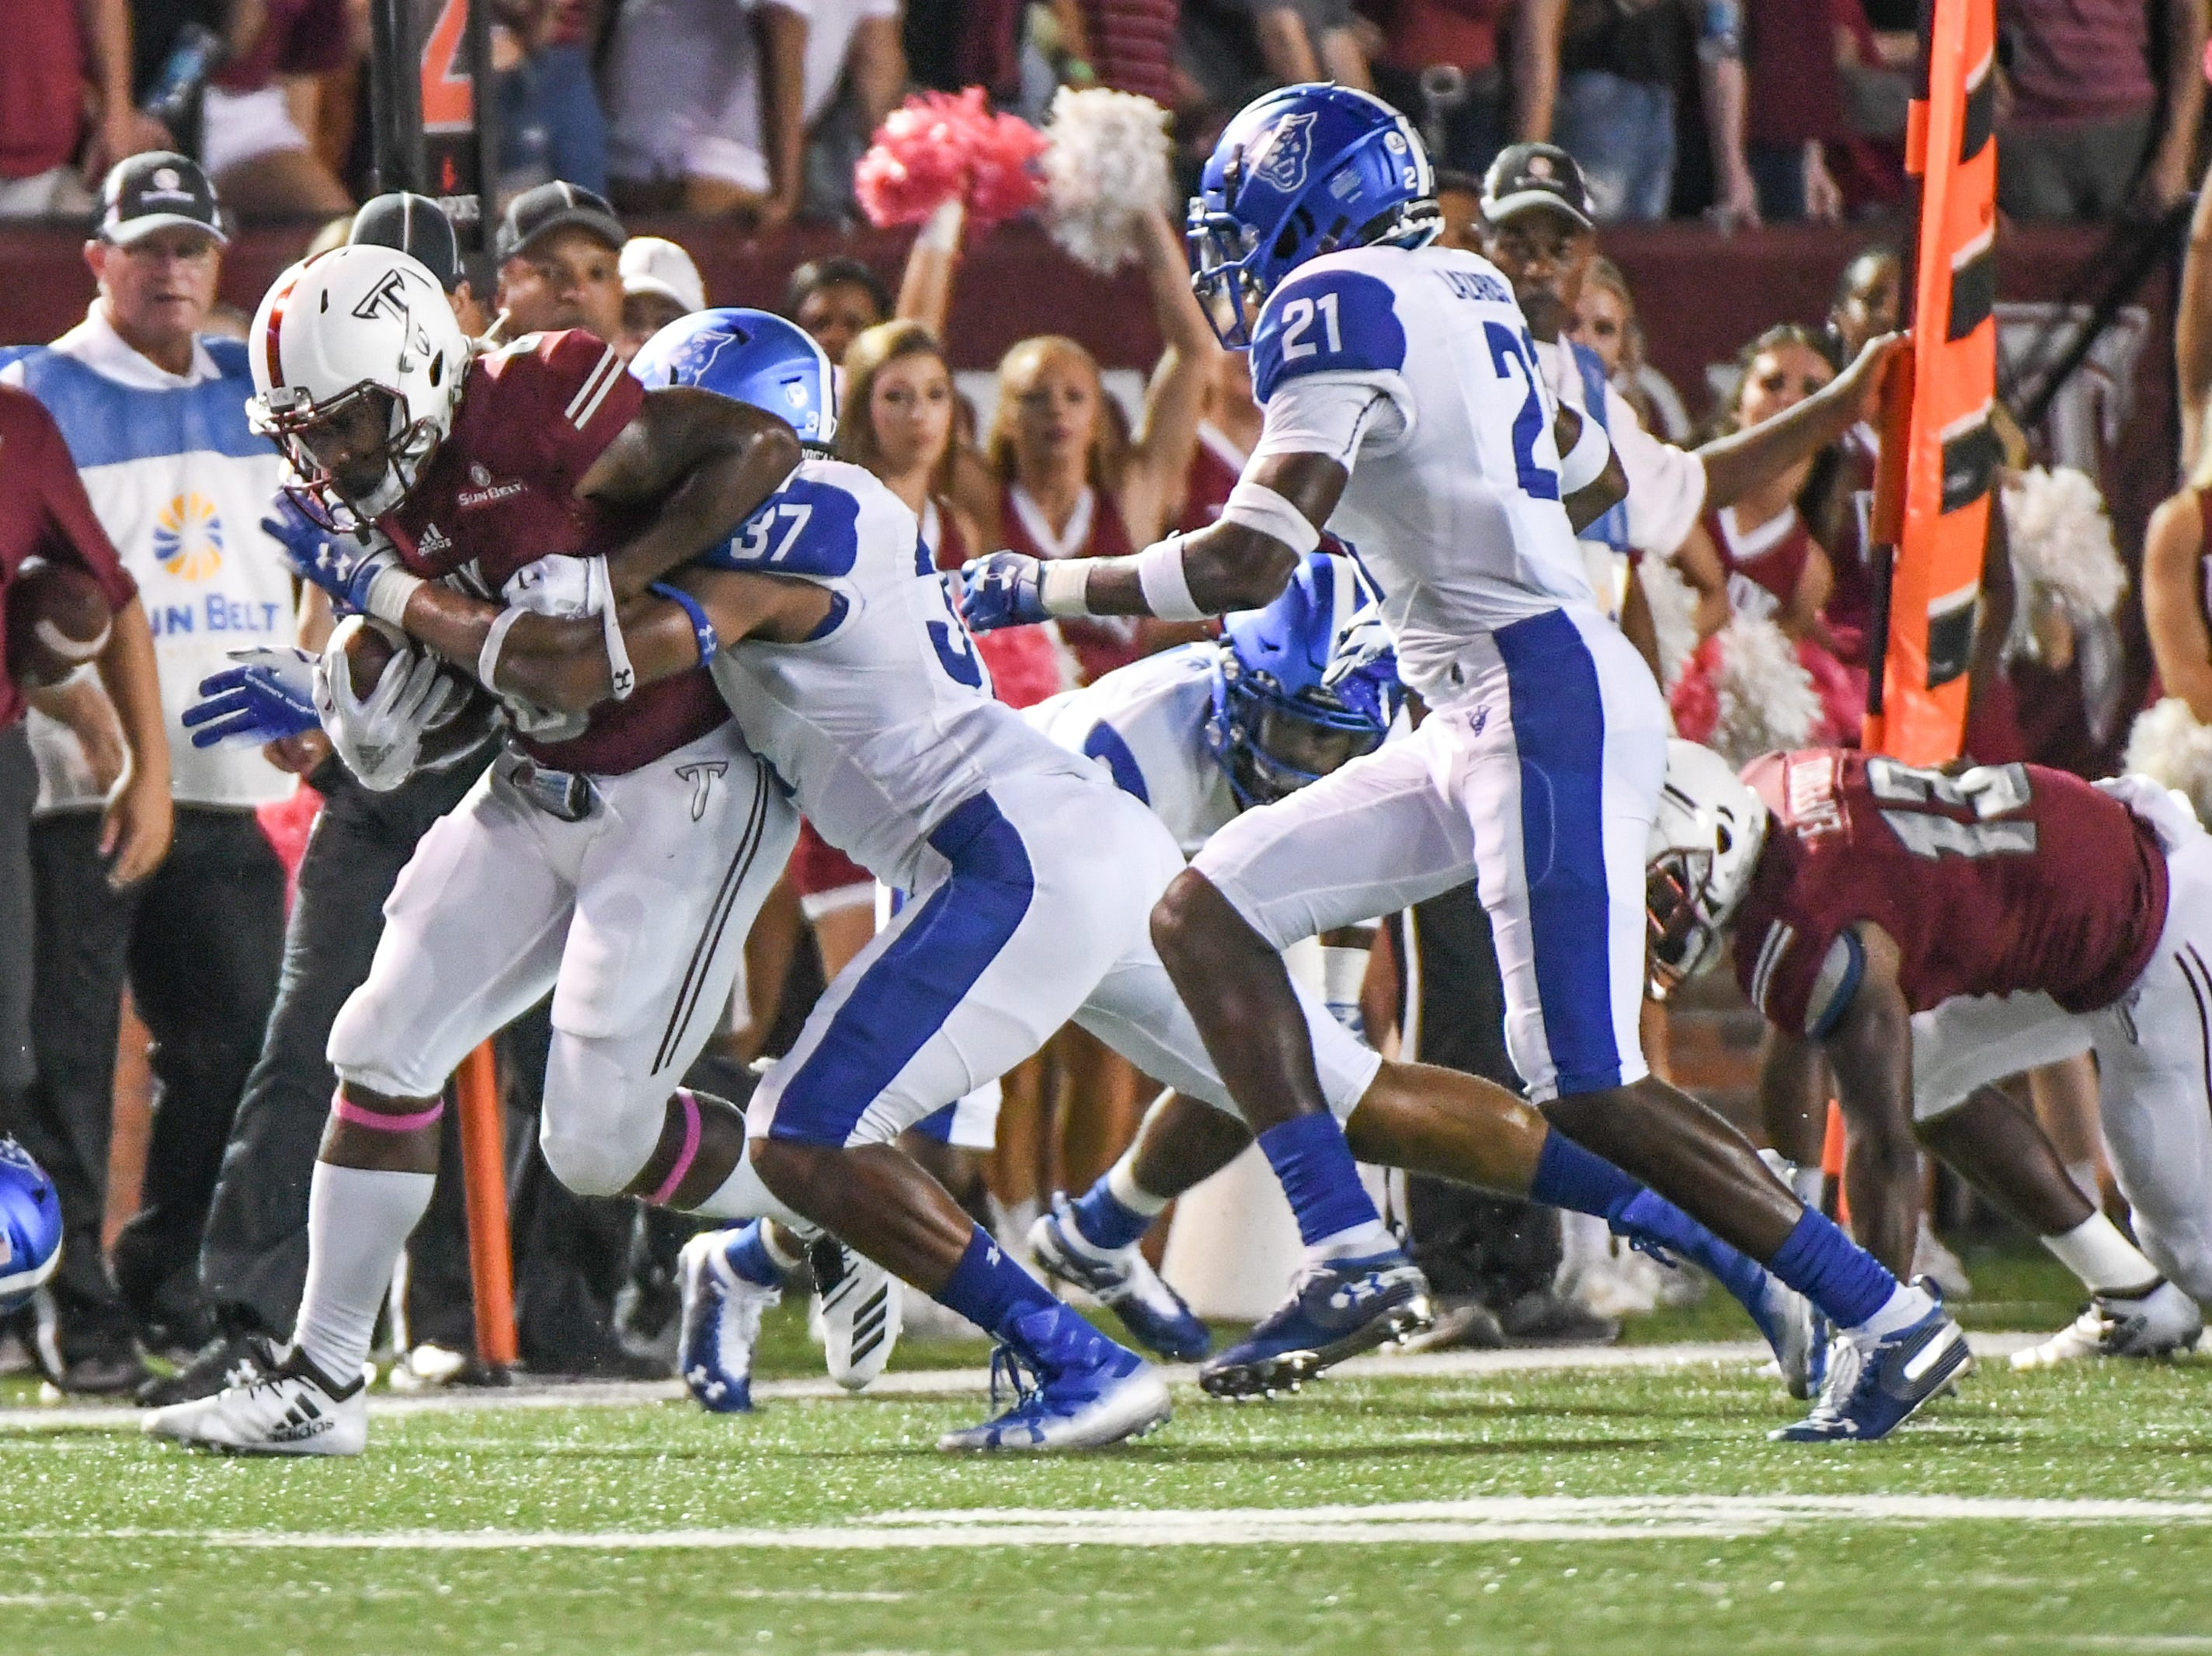 Troy Trojans wide receiver Sidney Davis (6) is tackled by Georgia State Panthers linebacker Victor Heyward (37) during the first half at Veteran's Memorial Stadium in Troy, Ala., on Thursday, Oct. 4, 2018. (Chip Dillard/Special to the Montgomery Advertiser)